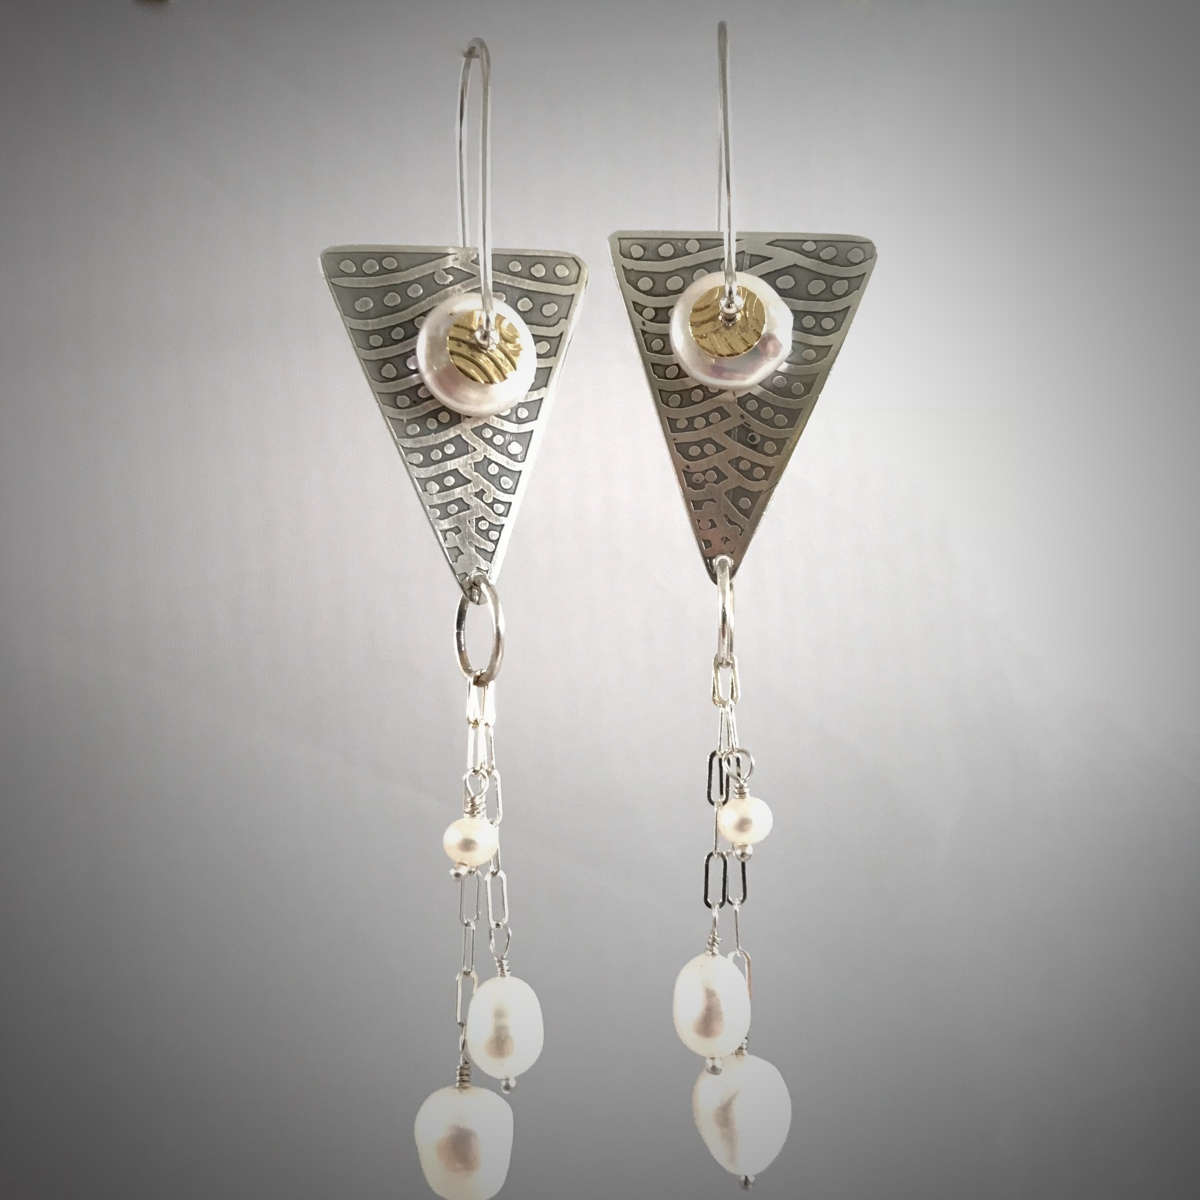 Kinetic Etched Silver Earrings Series #3 (large view)